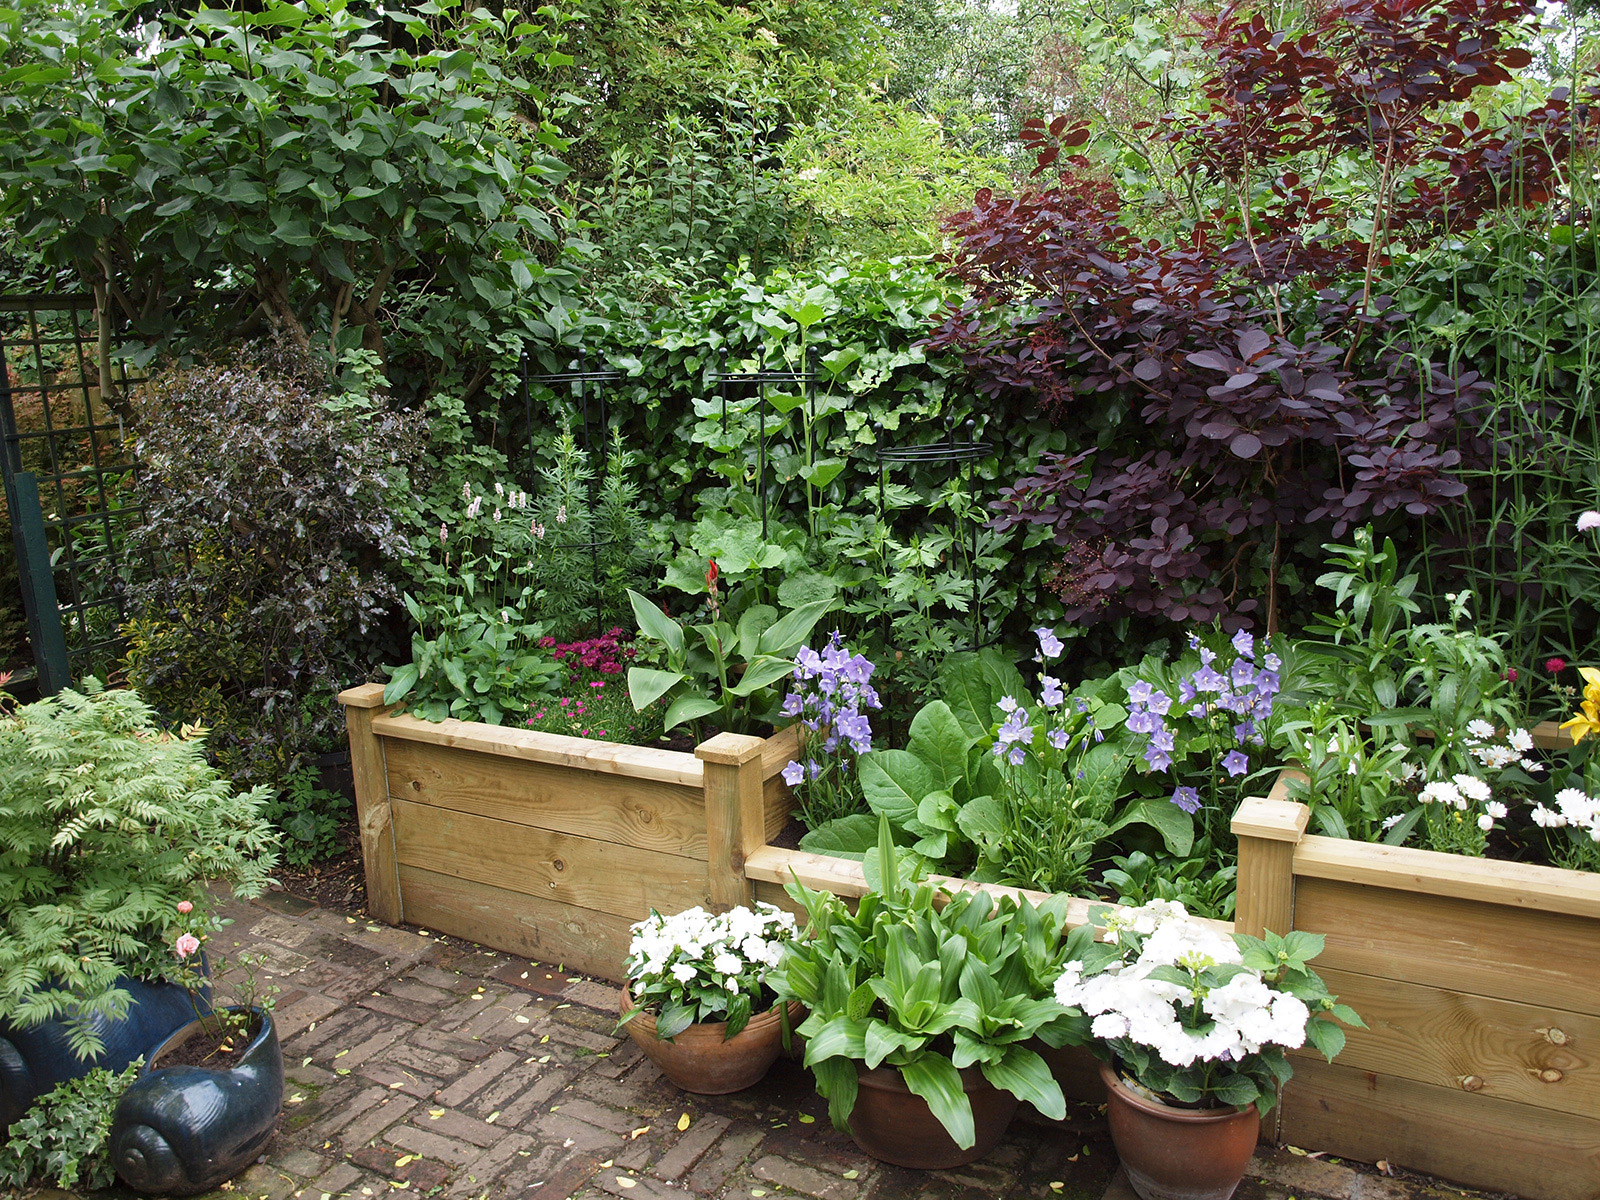 High quality raised planters are used in one section to give a change of level and increase the visual interest .